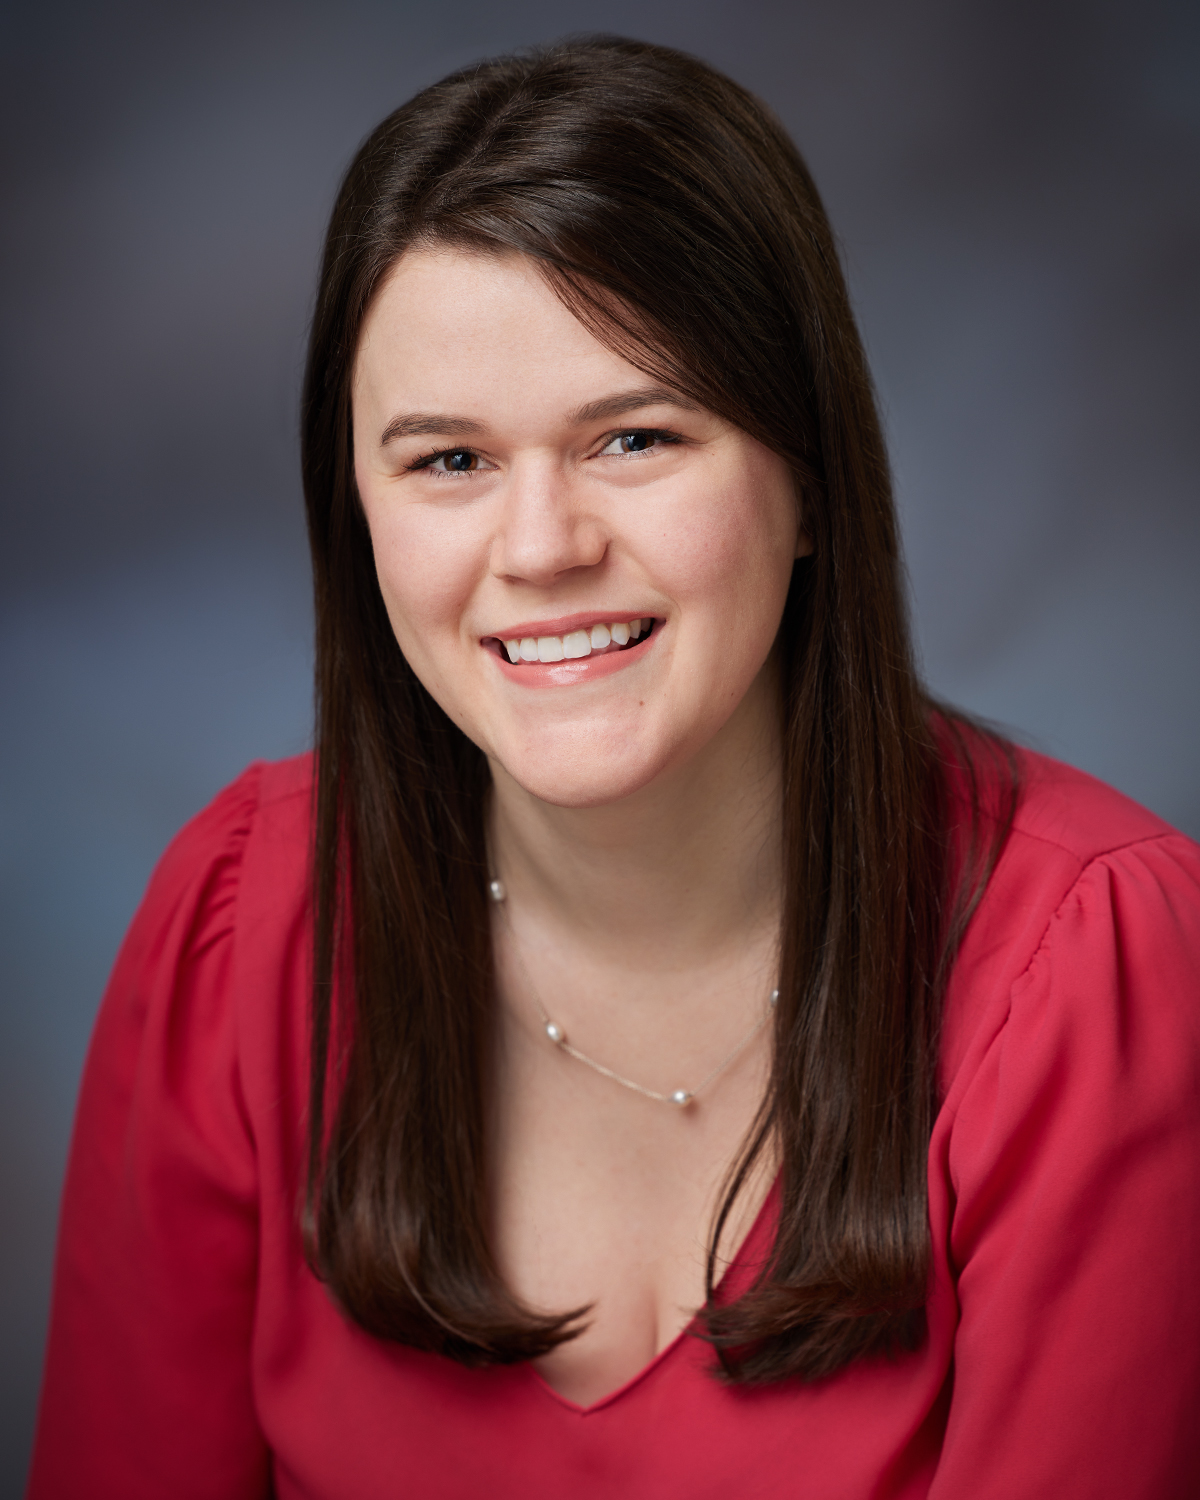 Ally Abbott, MS, CGC - Genetic Counselor, Preconception and Prenatal Genetics, Portland, OR